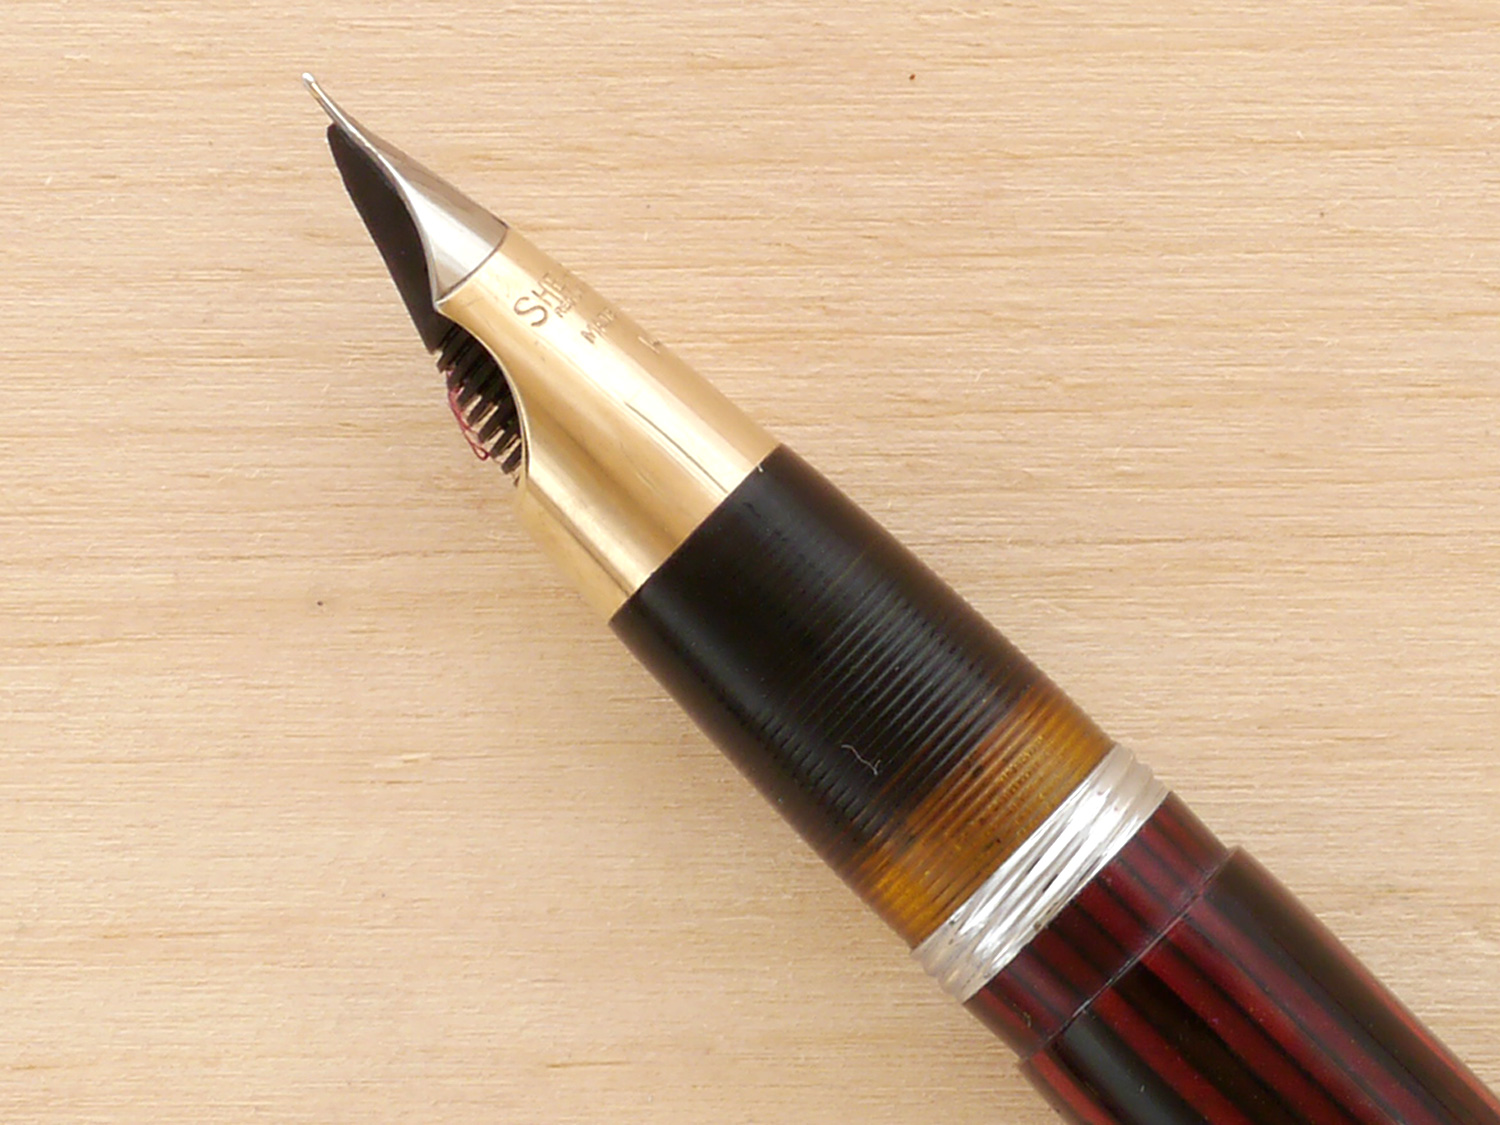 Sheaffer Tuckaway Vac in Carmine, XXF, nib profile showing excellent geometry and alignment